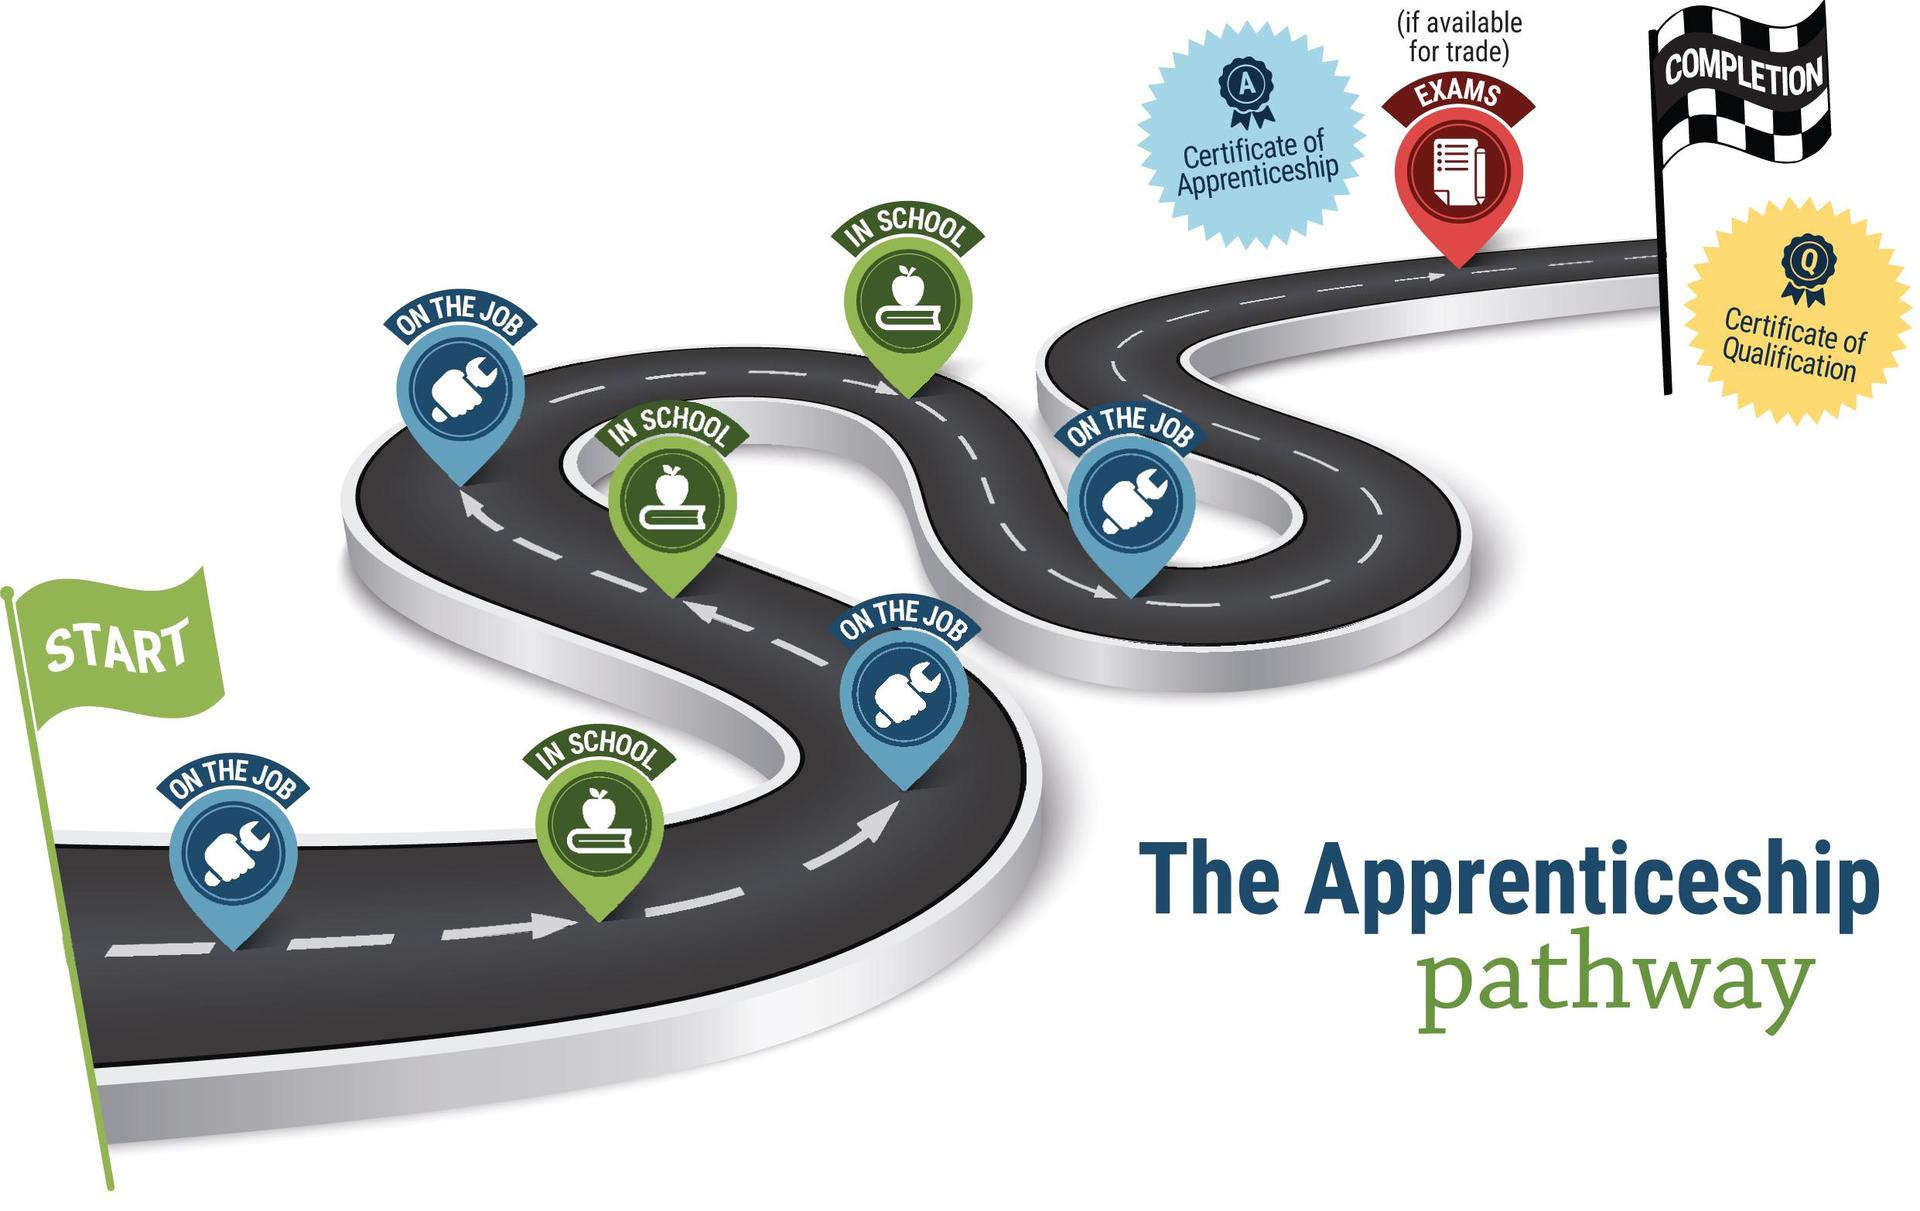 """Graphic titled """"The Apprenticeship Pathway."""" Illustration of curvy road with arrows leading into the distance. Green start flag in foreground, black and white checkered """"Completion"""" flag at the end. Markers along the way alternate between """"On the job"""" and """"In school""""."""